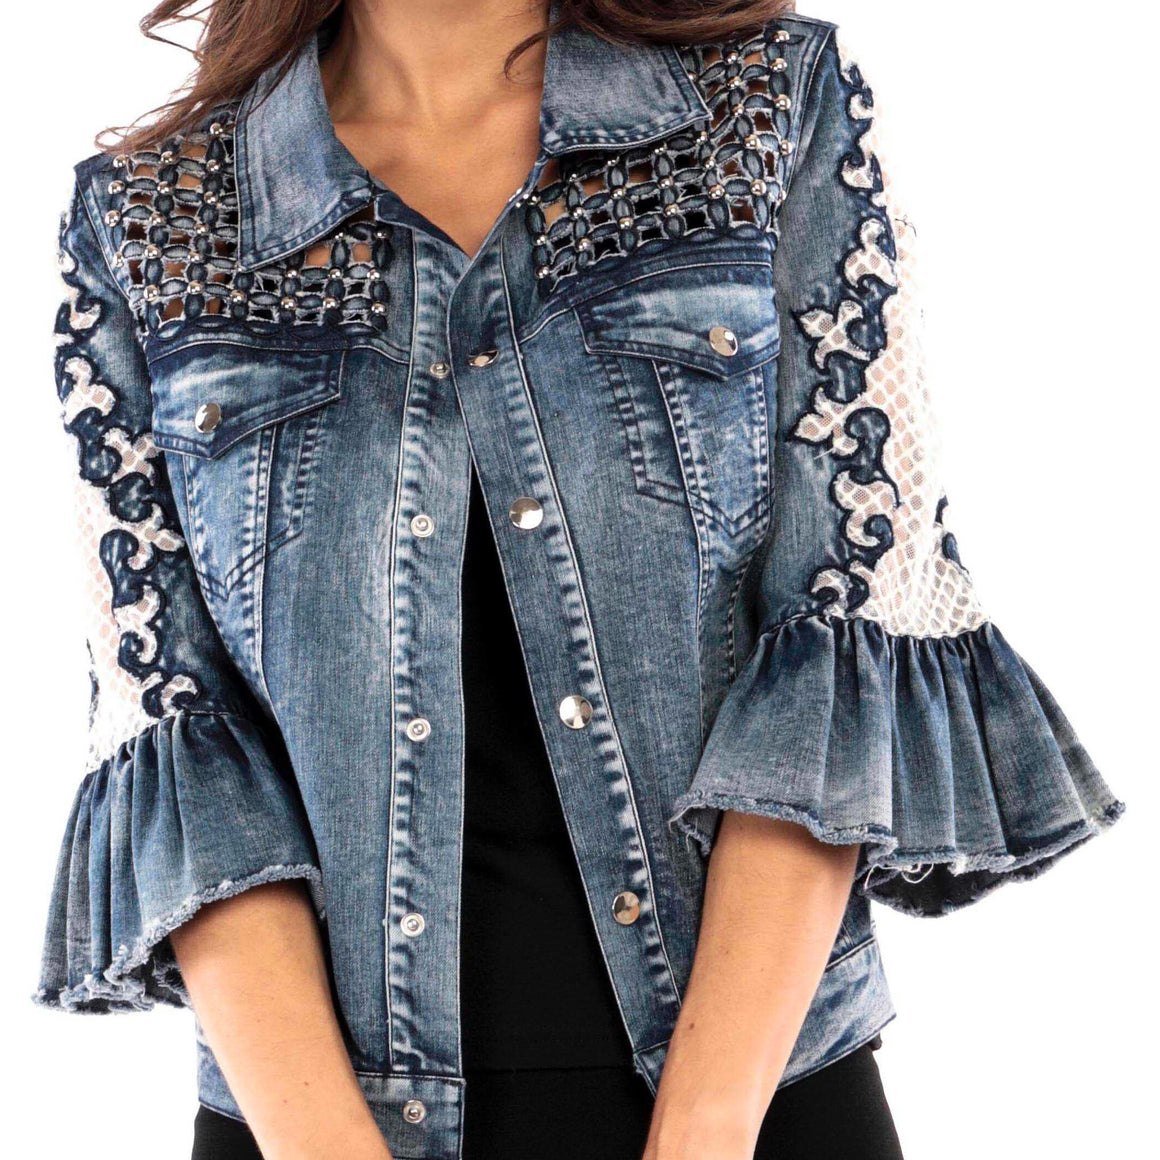 Denim Embellished Short Top